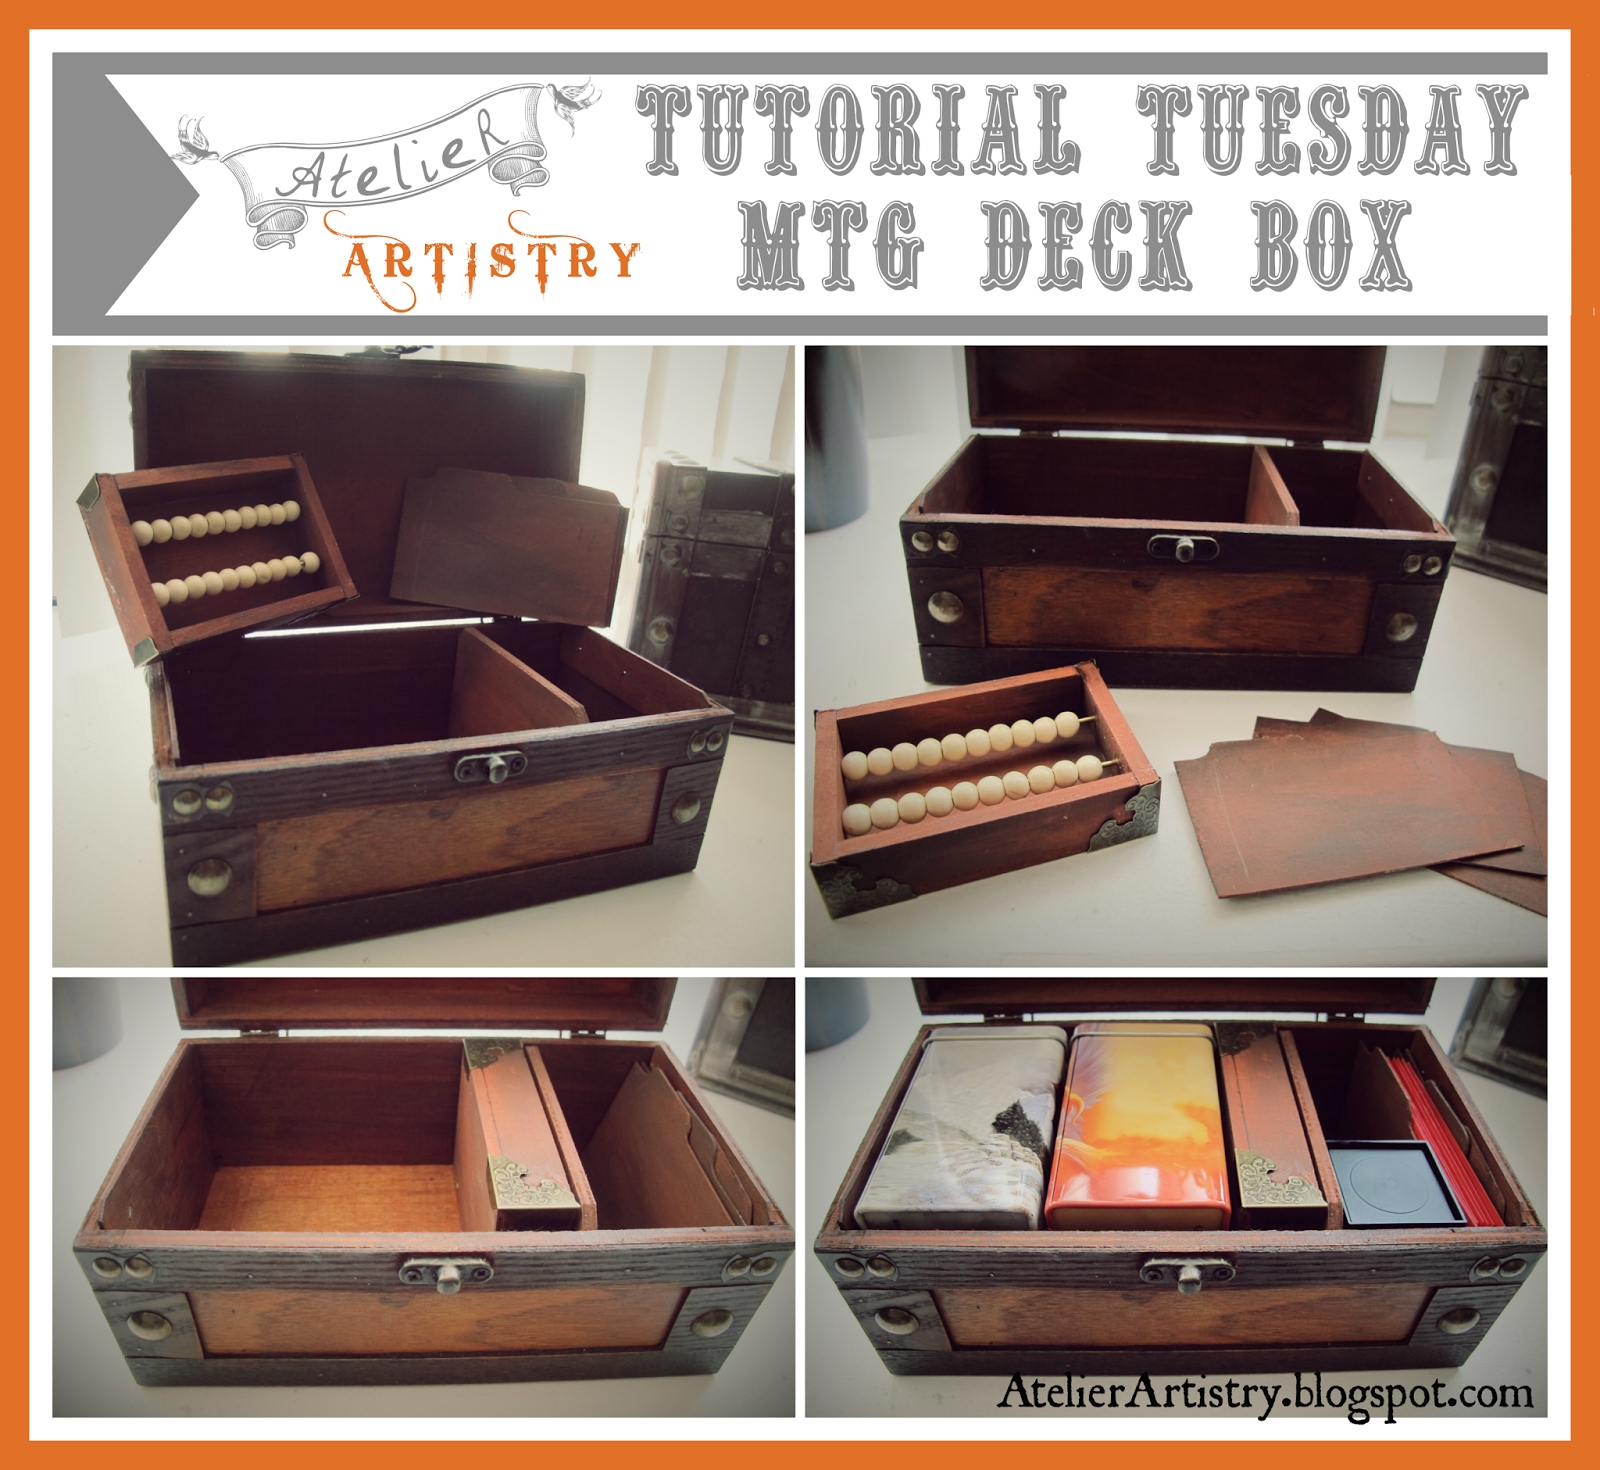 10 Most Popular Magic The Gathering Gift Ideas create a custom magic the gathering deck box and life counter my 2020